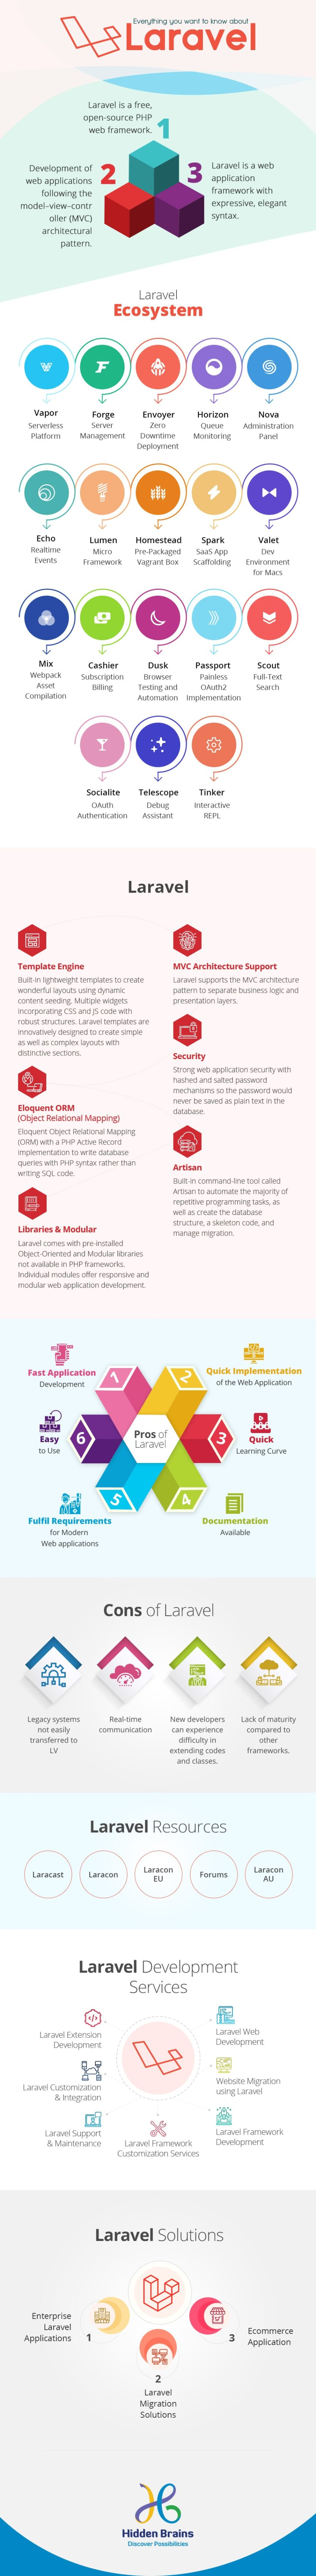 Infographics Explain Features and Advantages of Laravel